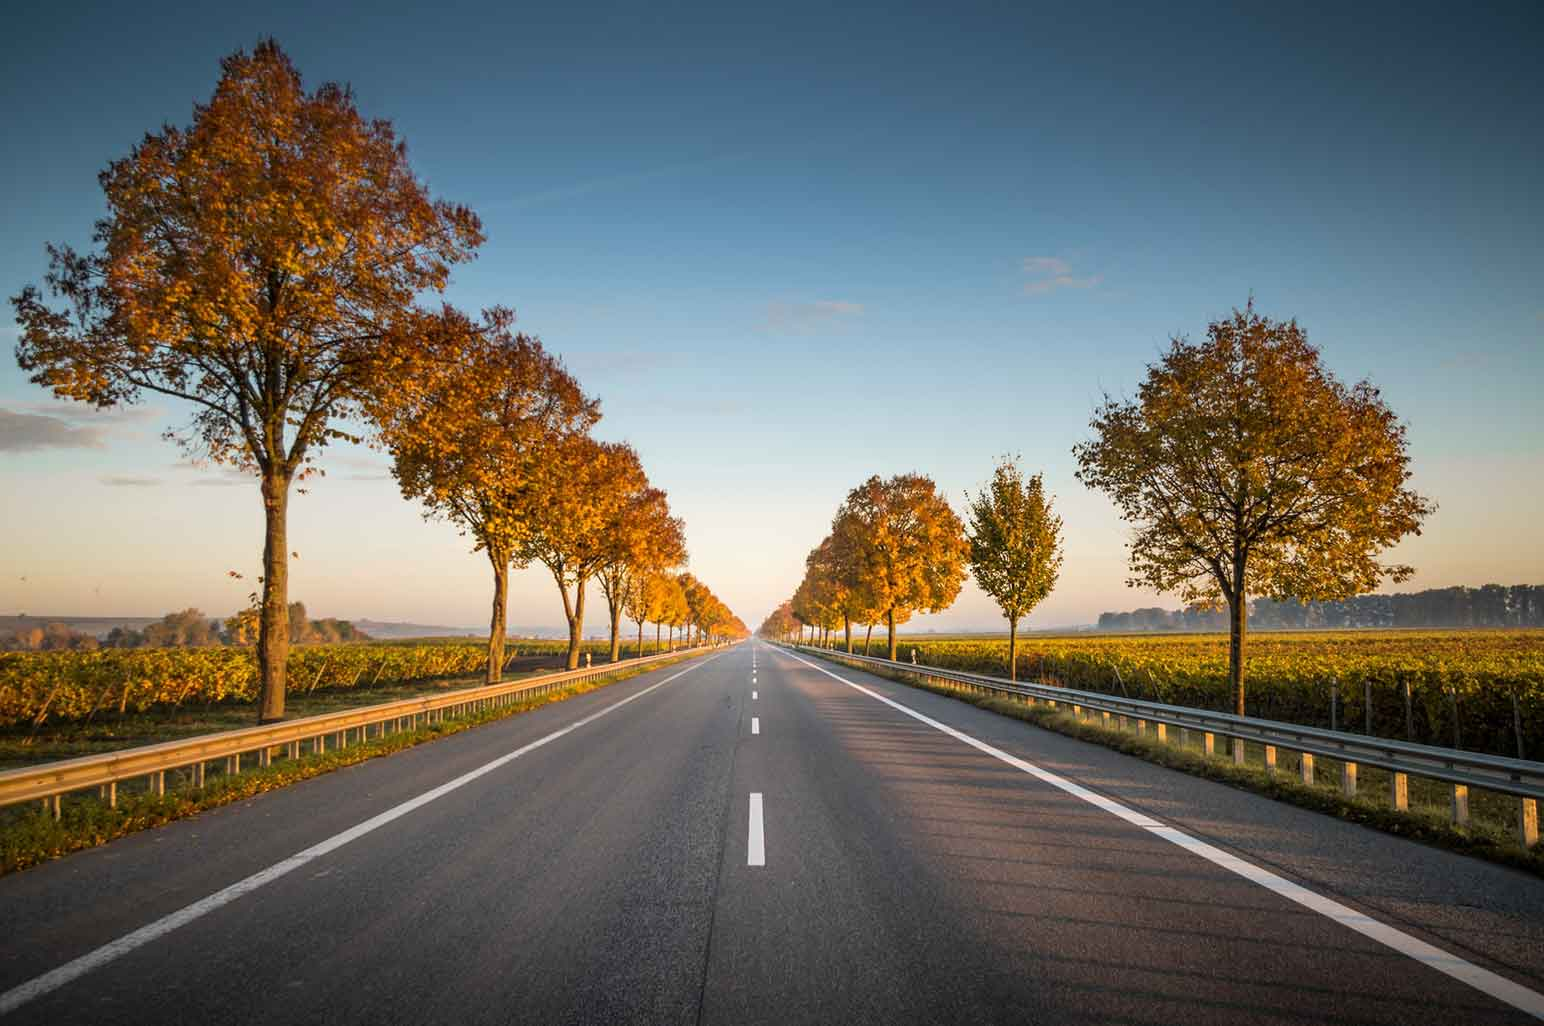 Facts You Need to Know About Right of Way on the Road